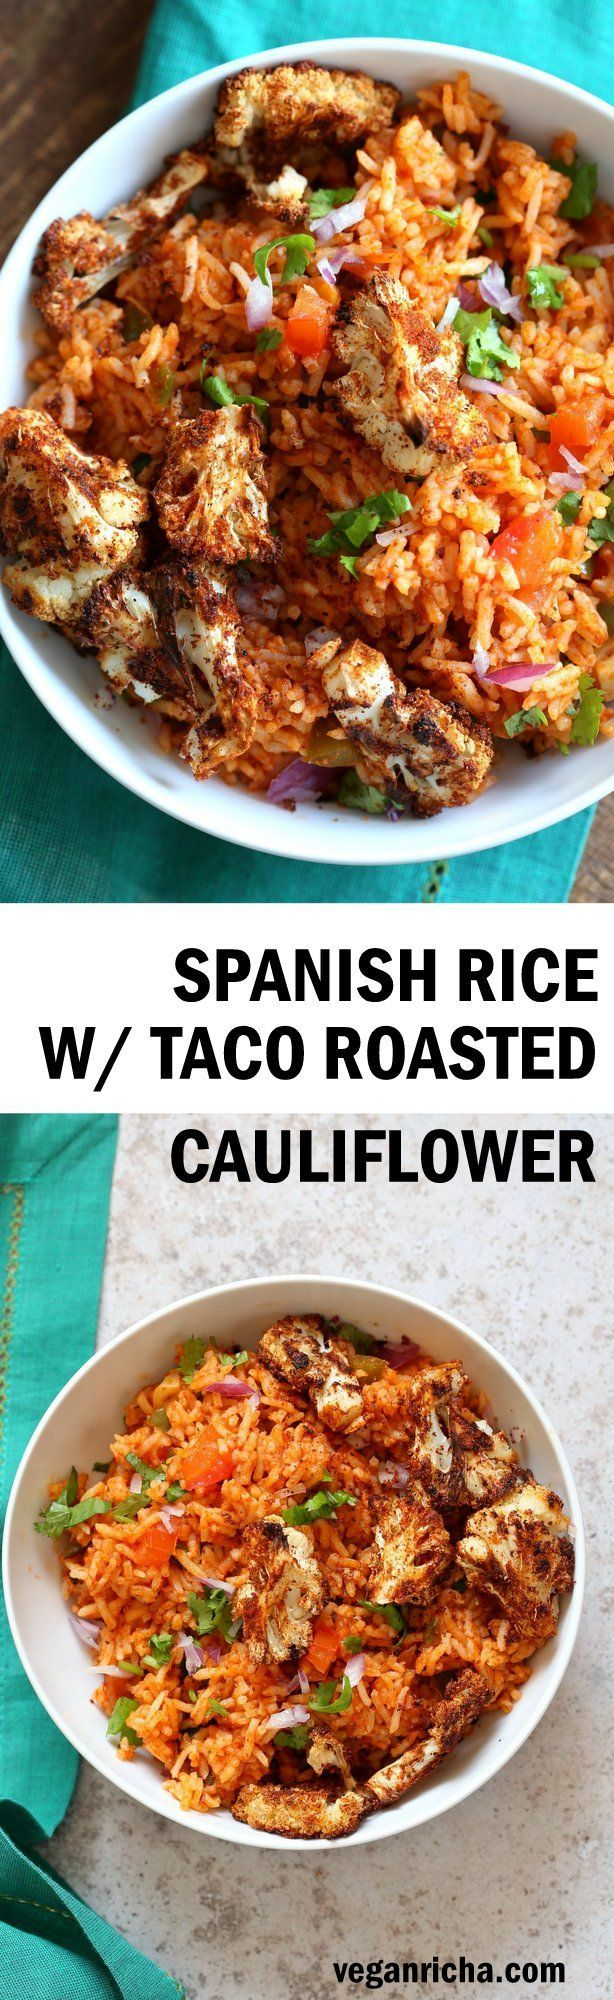 Spanish Rice Bowl with Taco Spice Roasted Cauliflower Easy Vegan Spanish Rice Bowl with Taco Roasted Cauliflower. Everyday Meal with everyday ingredients. | Easy Vegan Spanish Rice Bowl with Taco Roasted Cauliflower. Everyday Meal with everyday ingredients. |